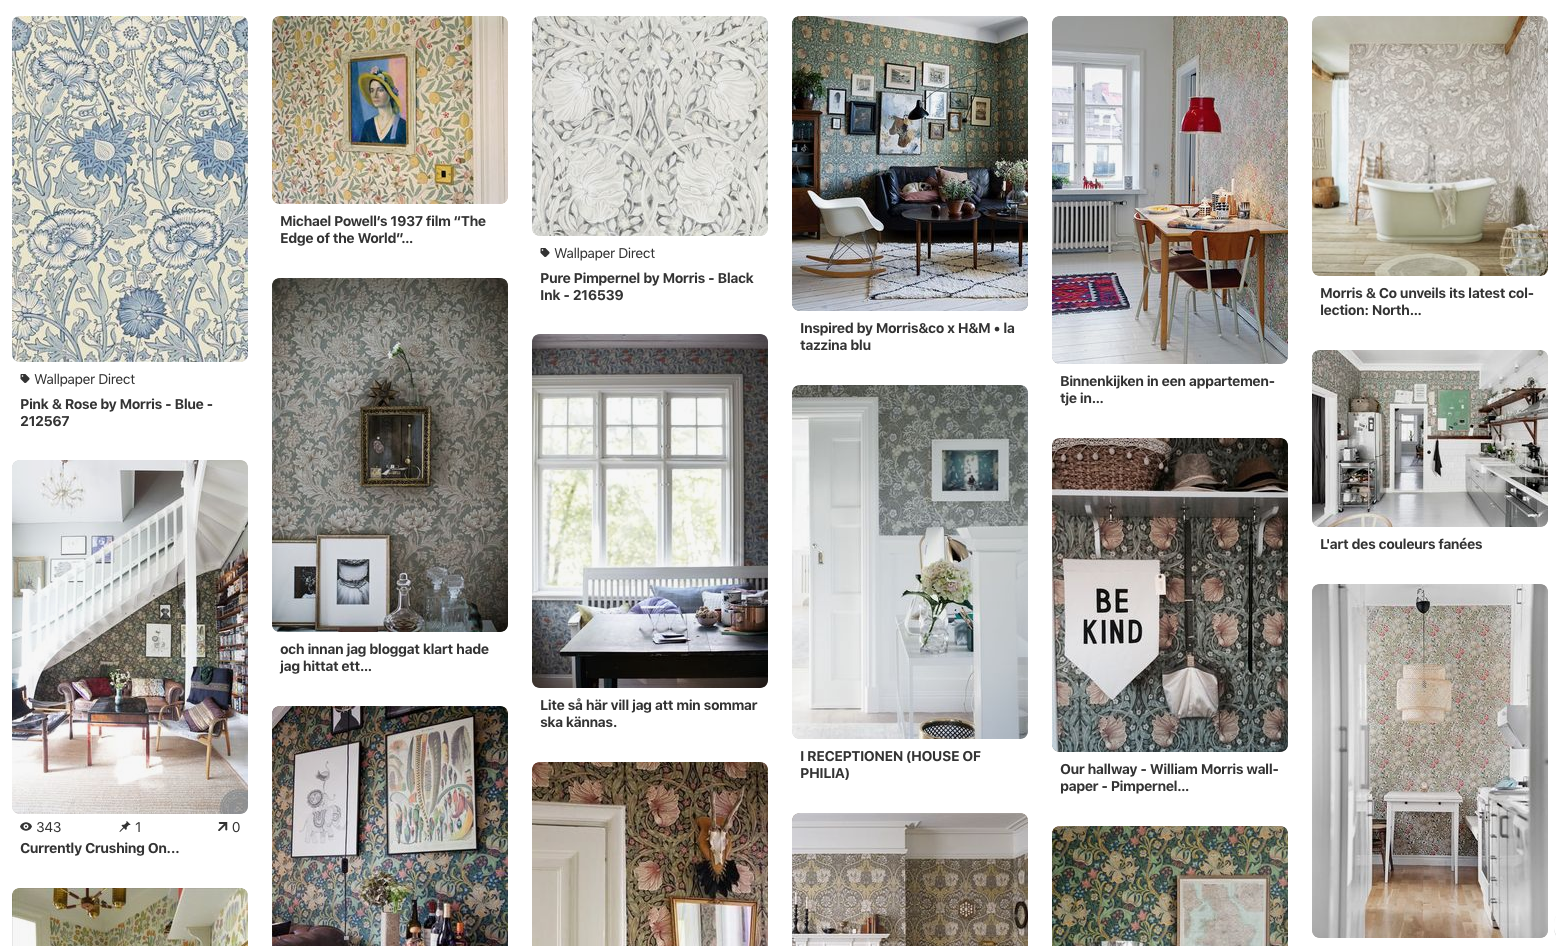 My Pinterest Board showing Morris & Co in various interiors